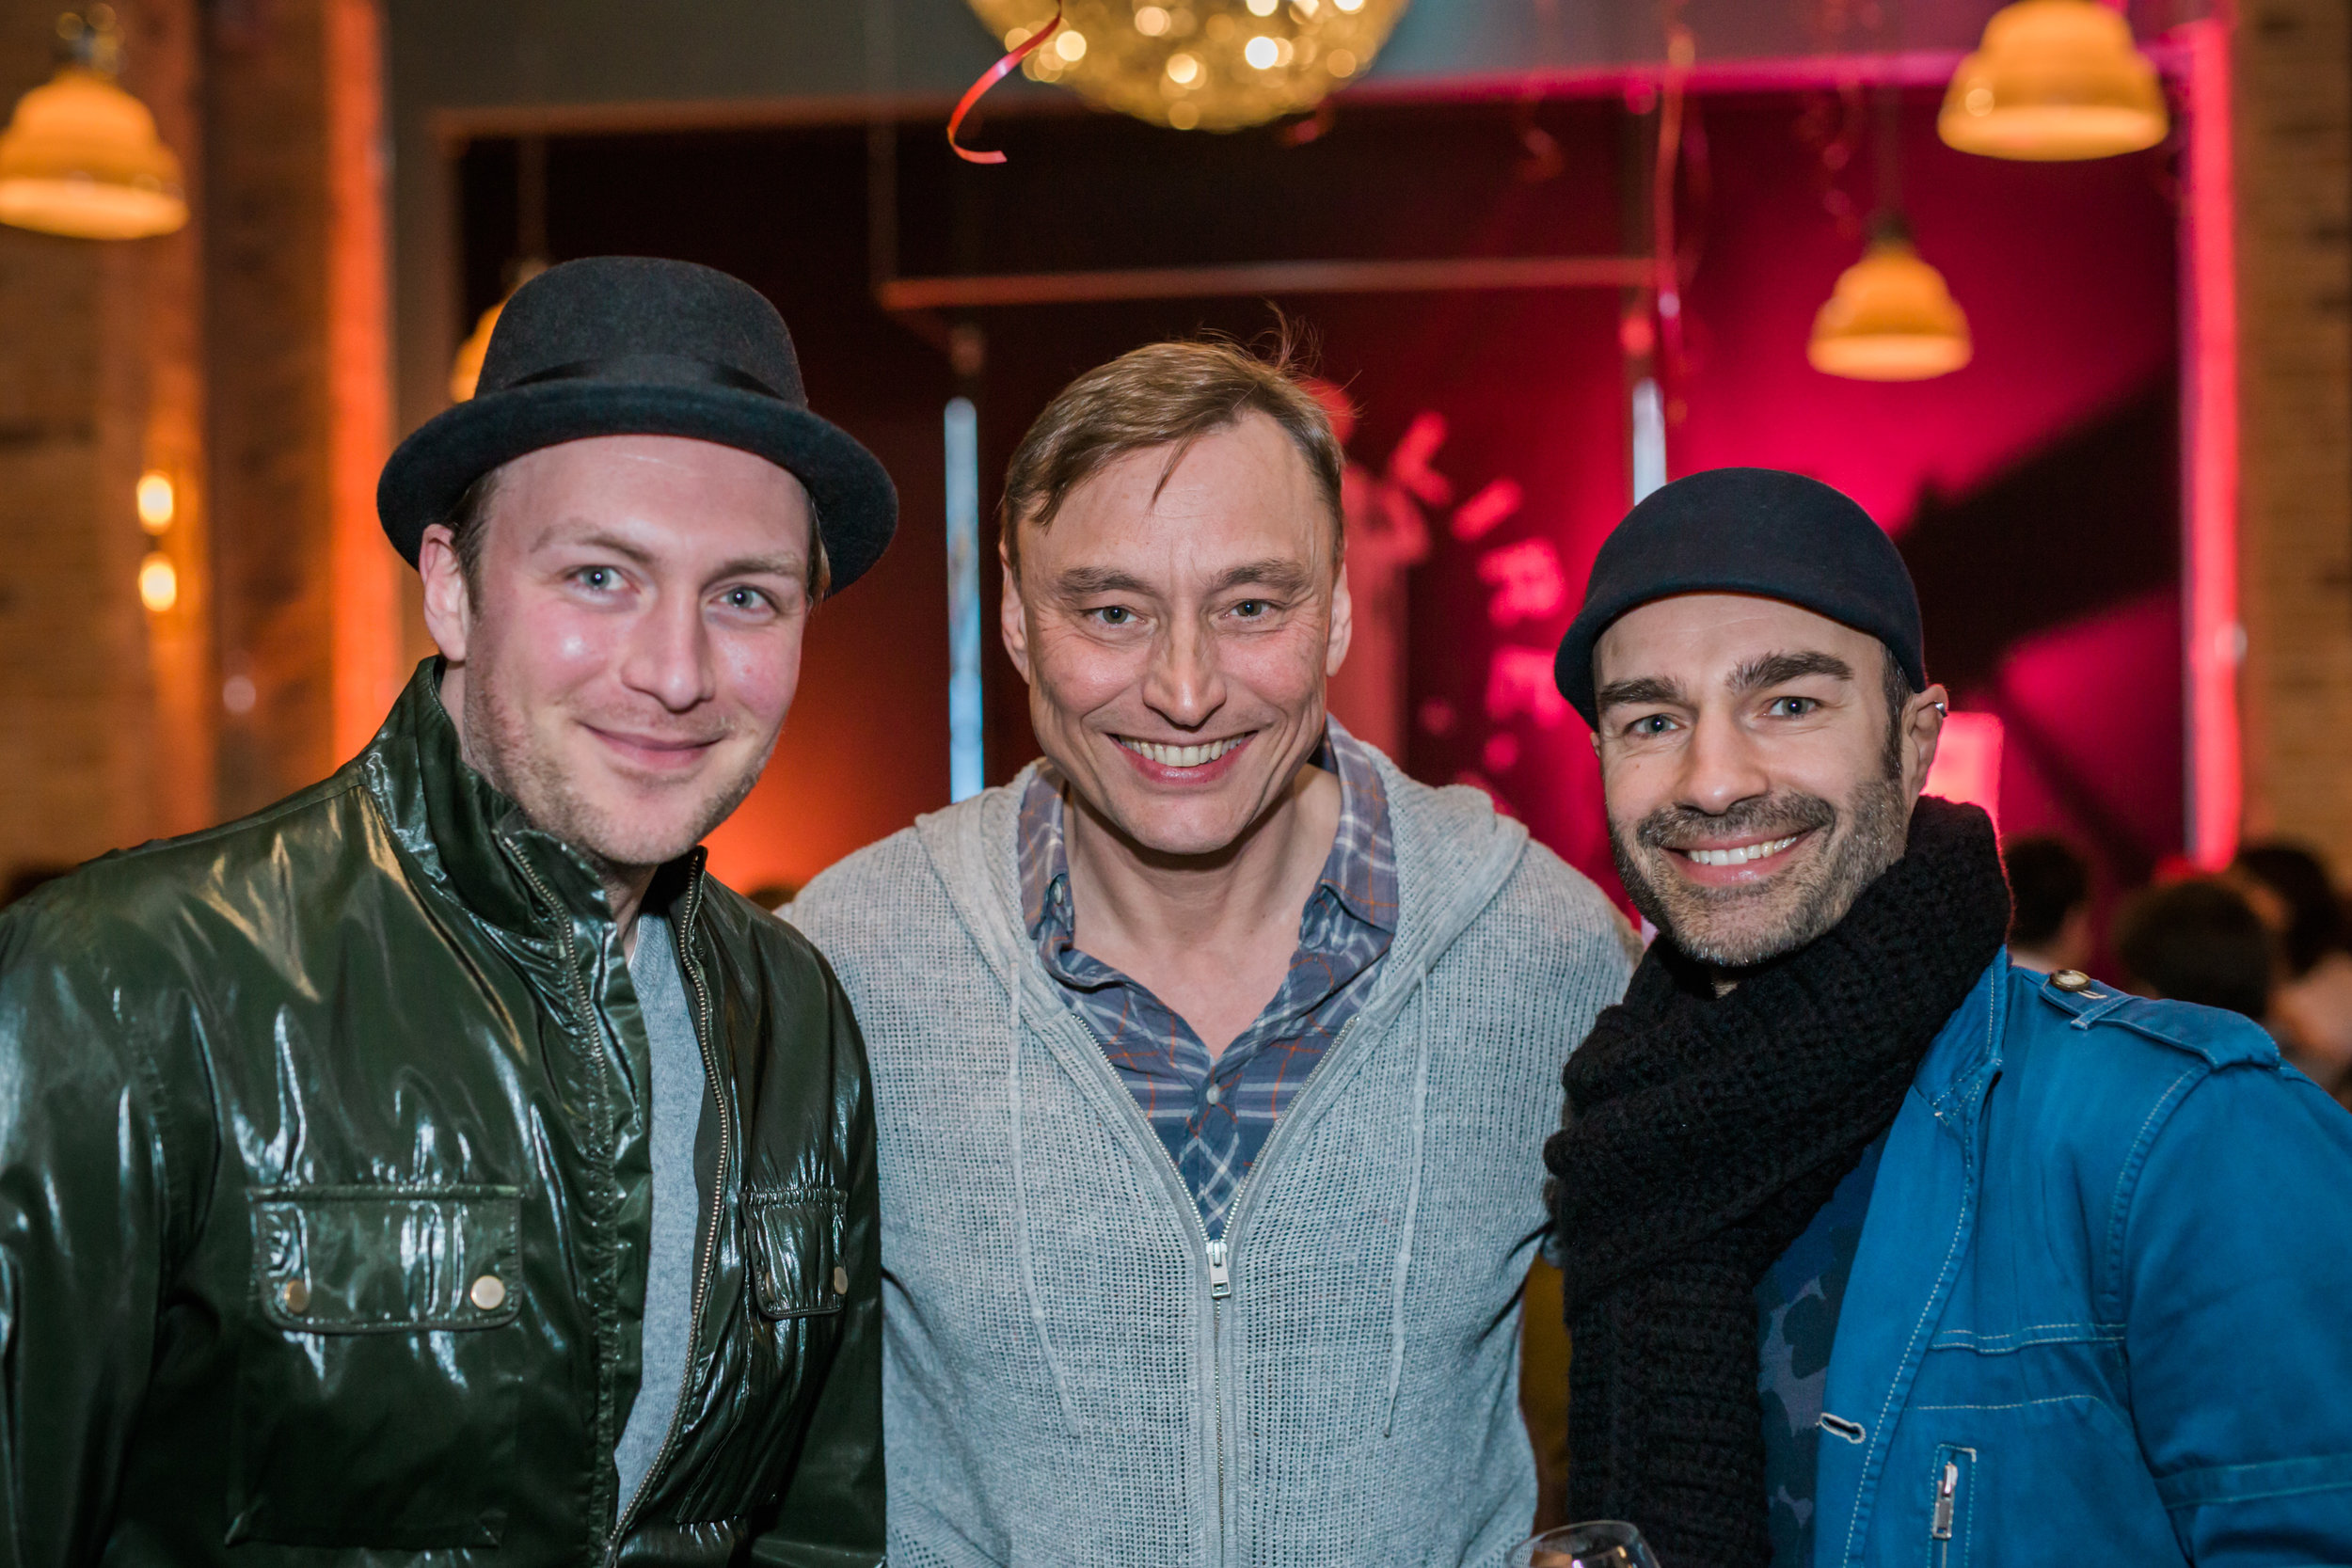 20170423-PRIVAT-SOUL-FOOD-CONCERT-NICOLE-CROSS-THINK-OUT-OF-THE-BOX-OFFENBLENDE-TK-057.jpg